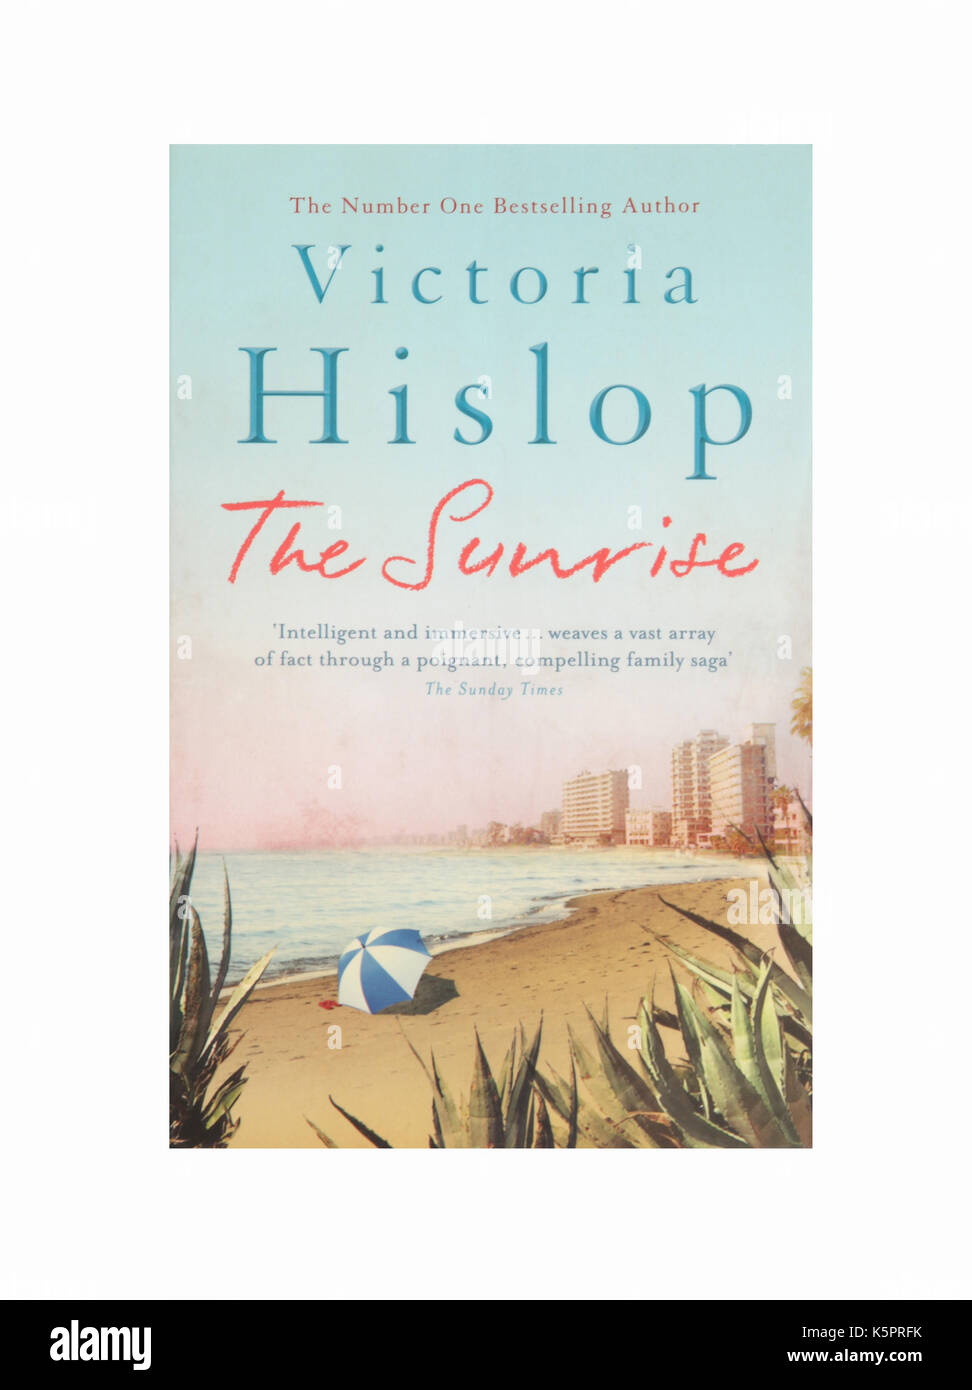 The book The Sunrise by Victoria Hislop - Stock Image